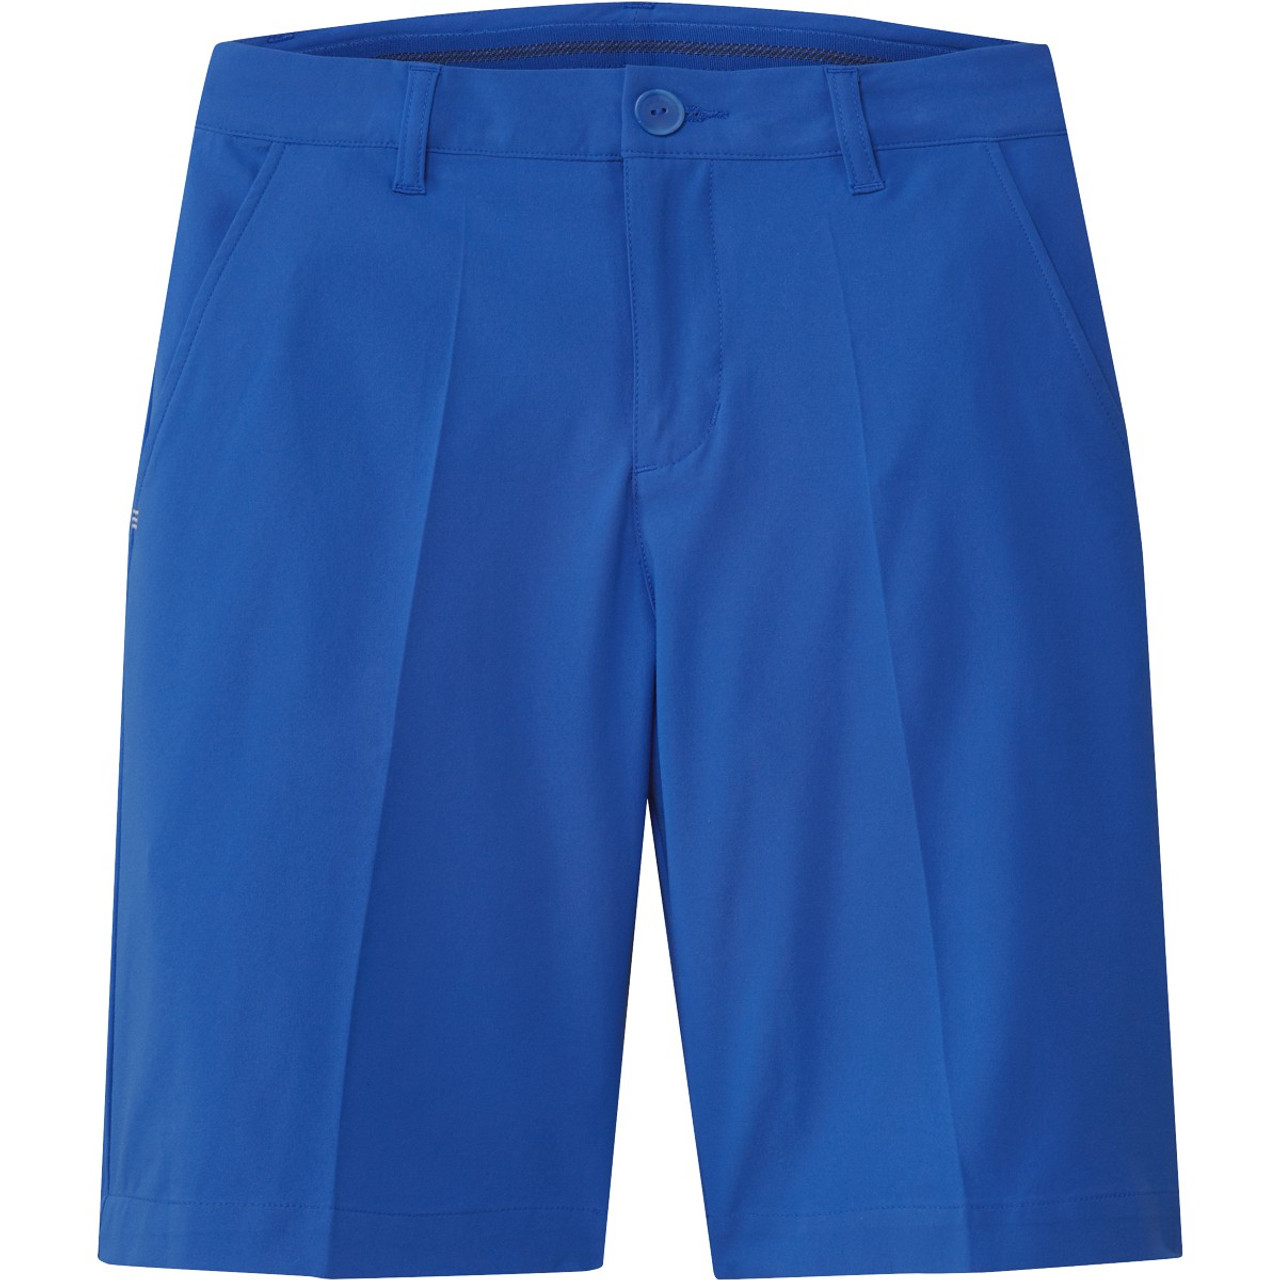 Adidas Boys Solid Shorts - Glory Blue